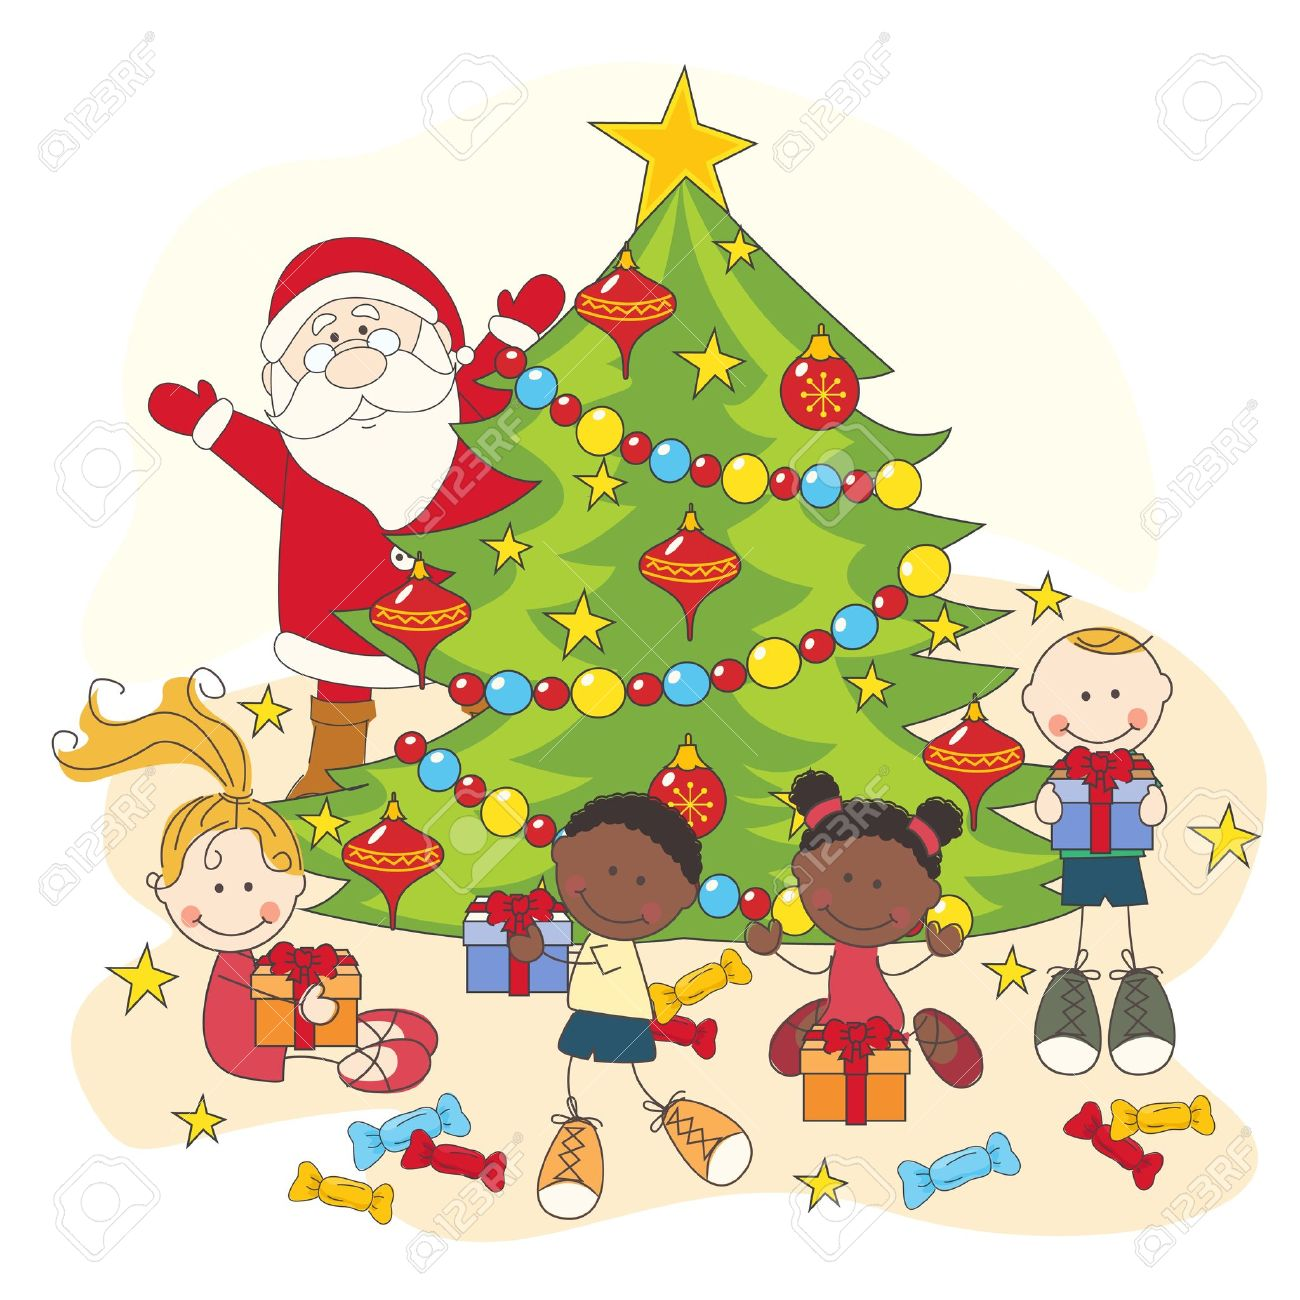 Free Christmas Drawing at GetDrawings.com | Free for personal use ...